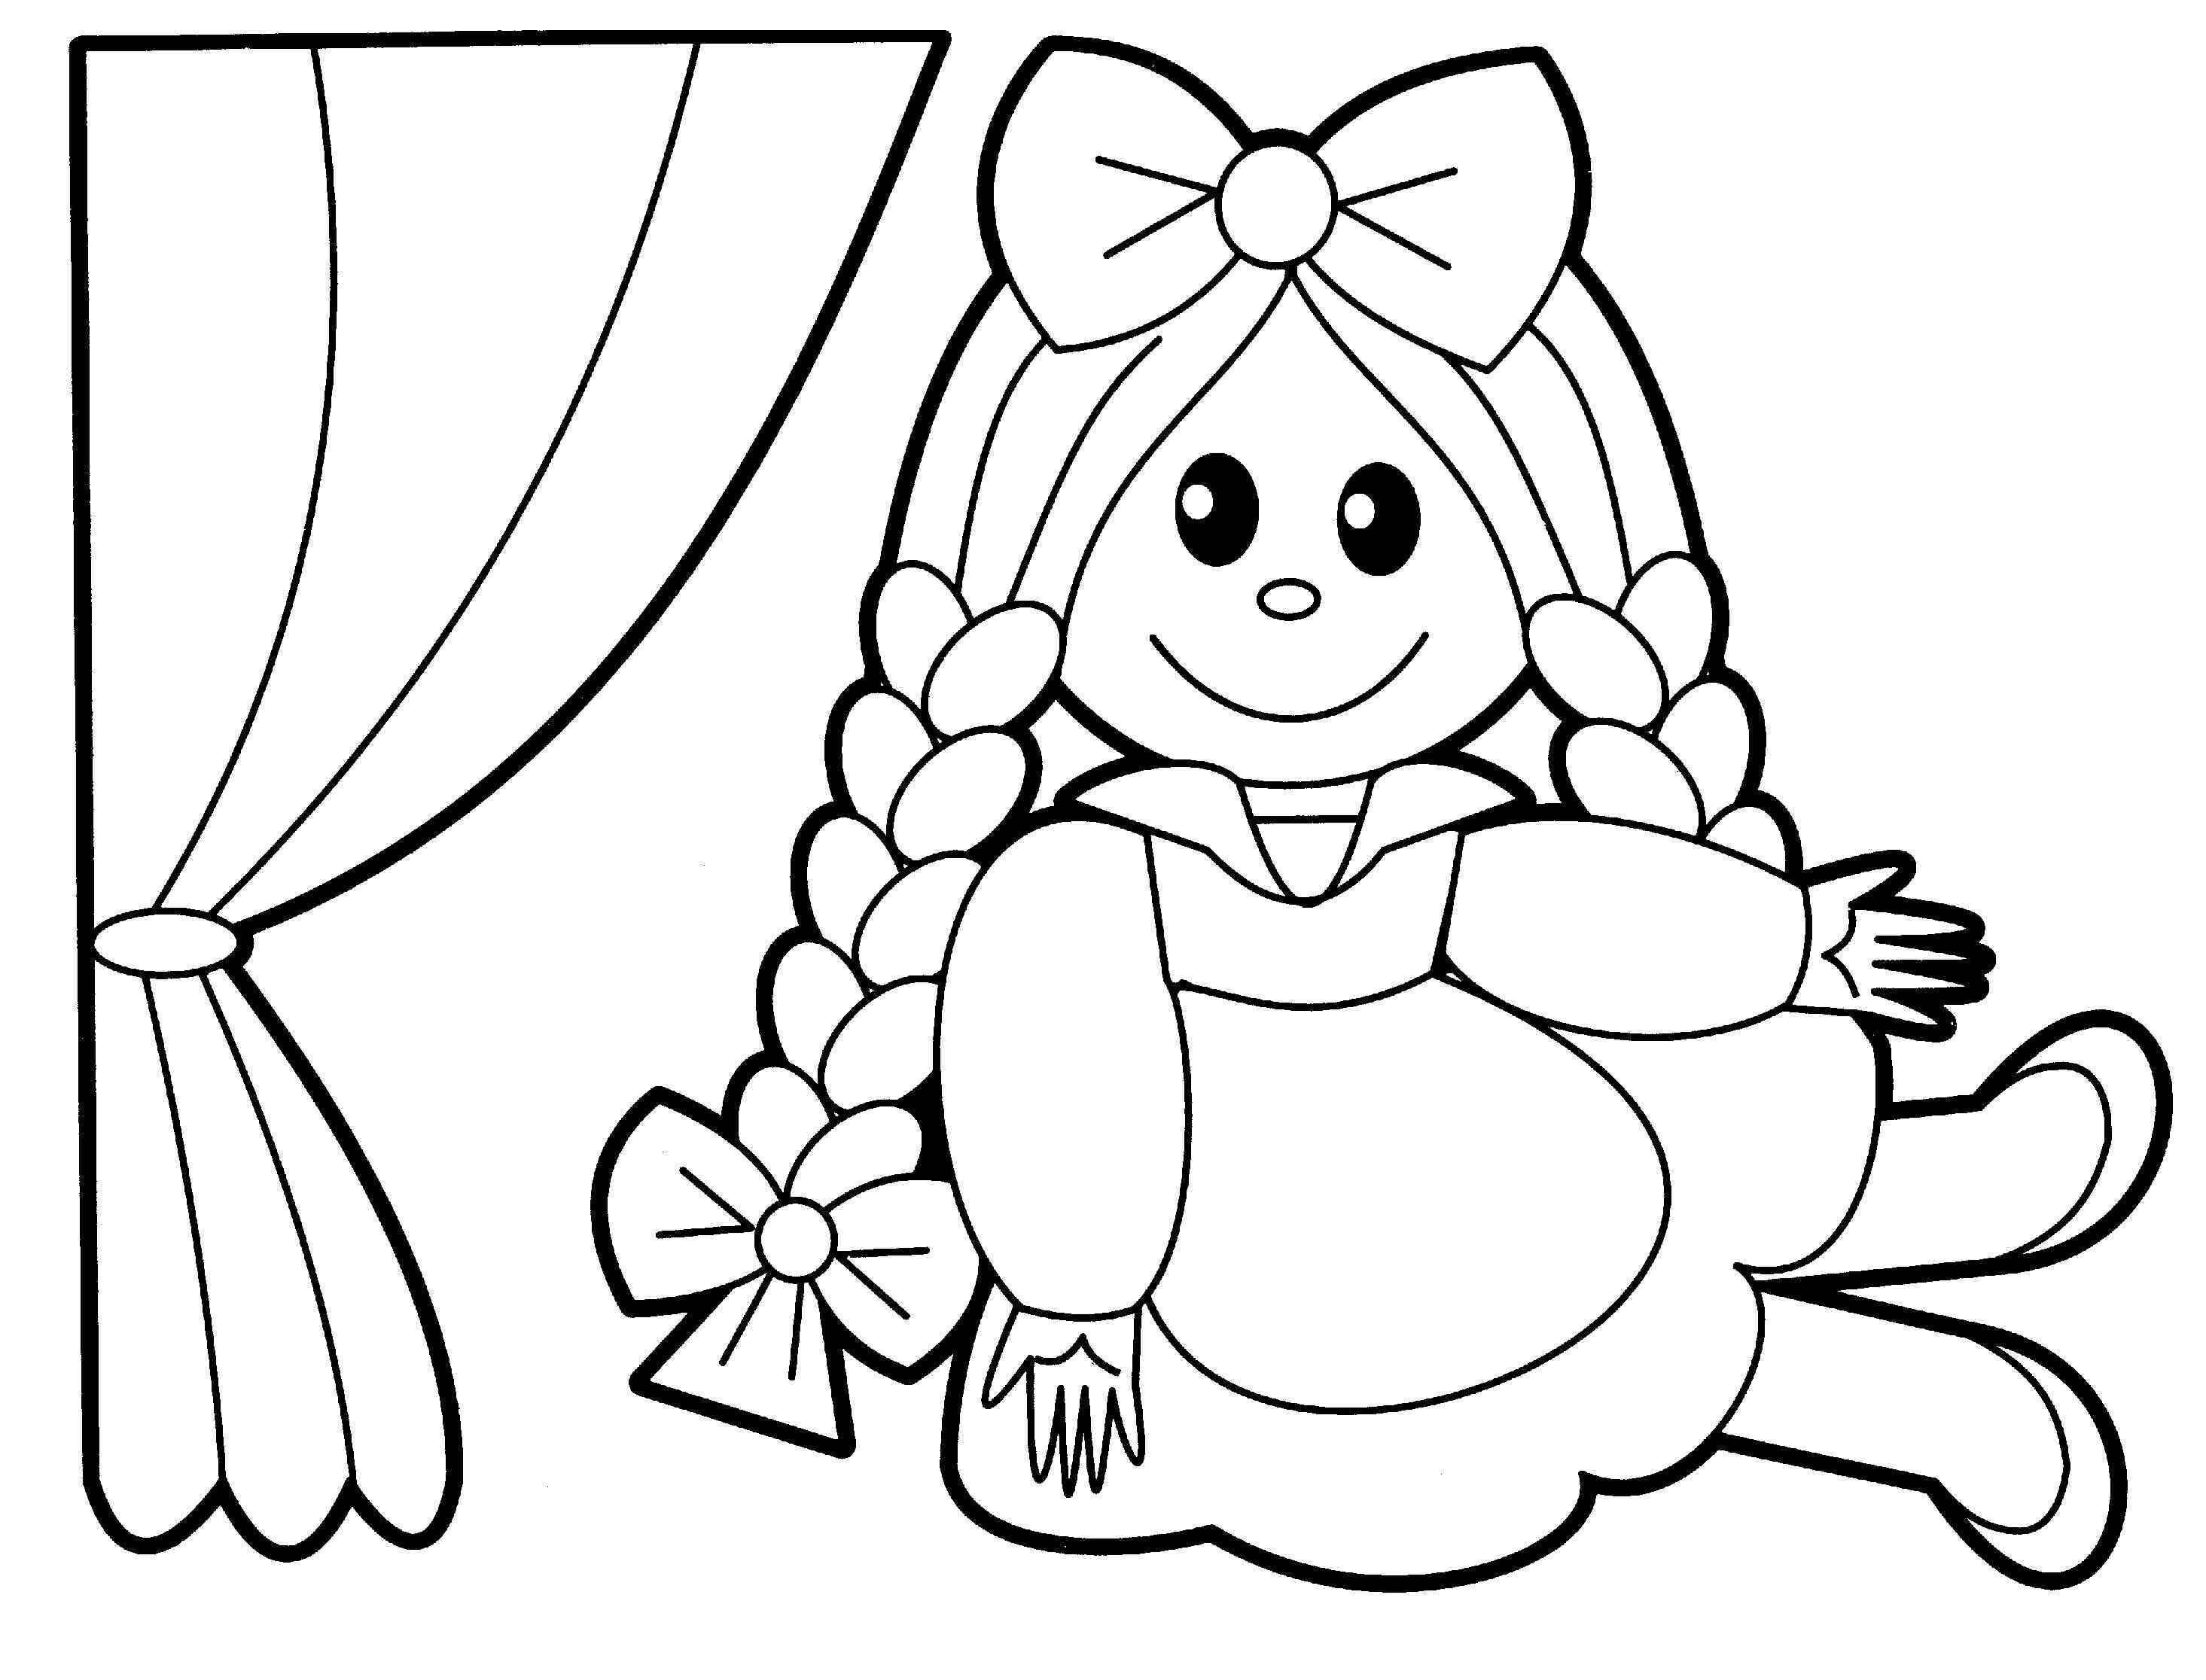 coloring kids pages free printable boy coloring pages for kids pages coloring kids